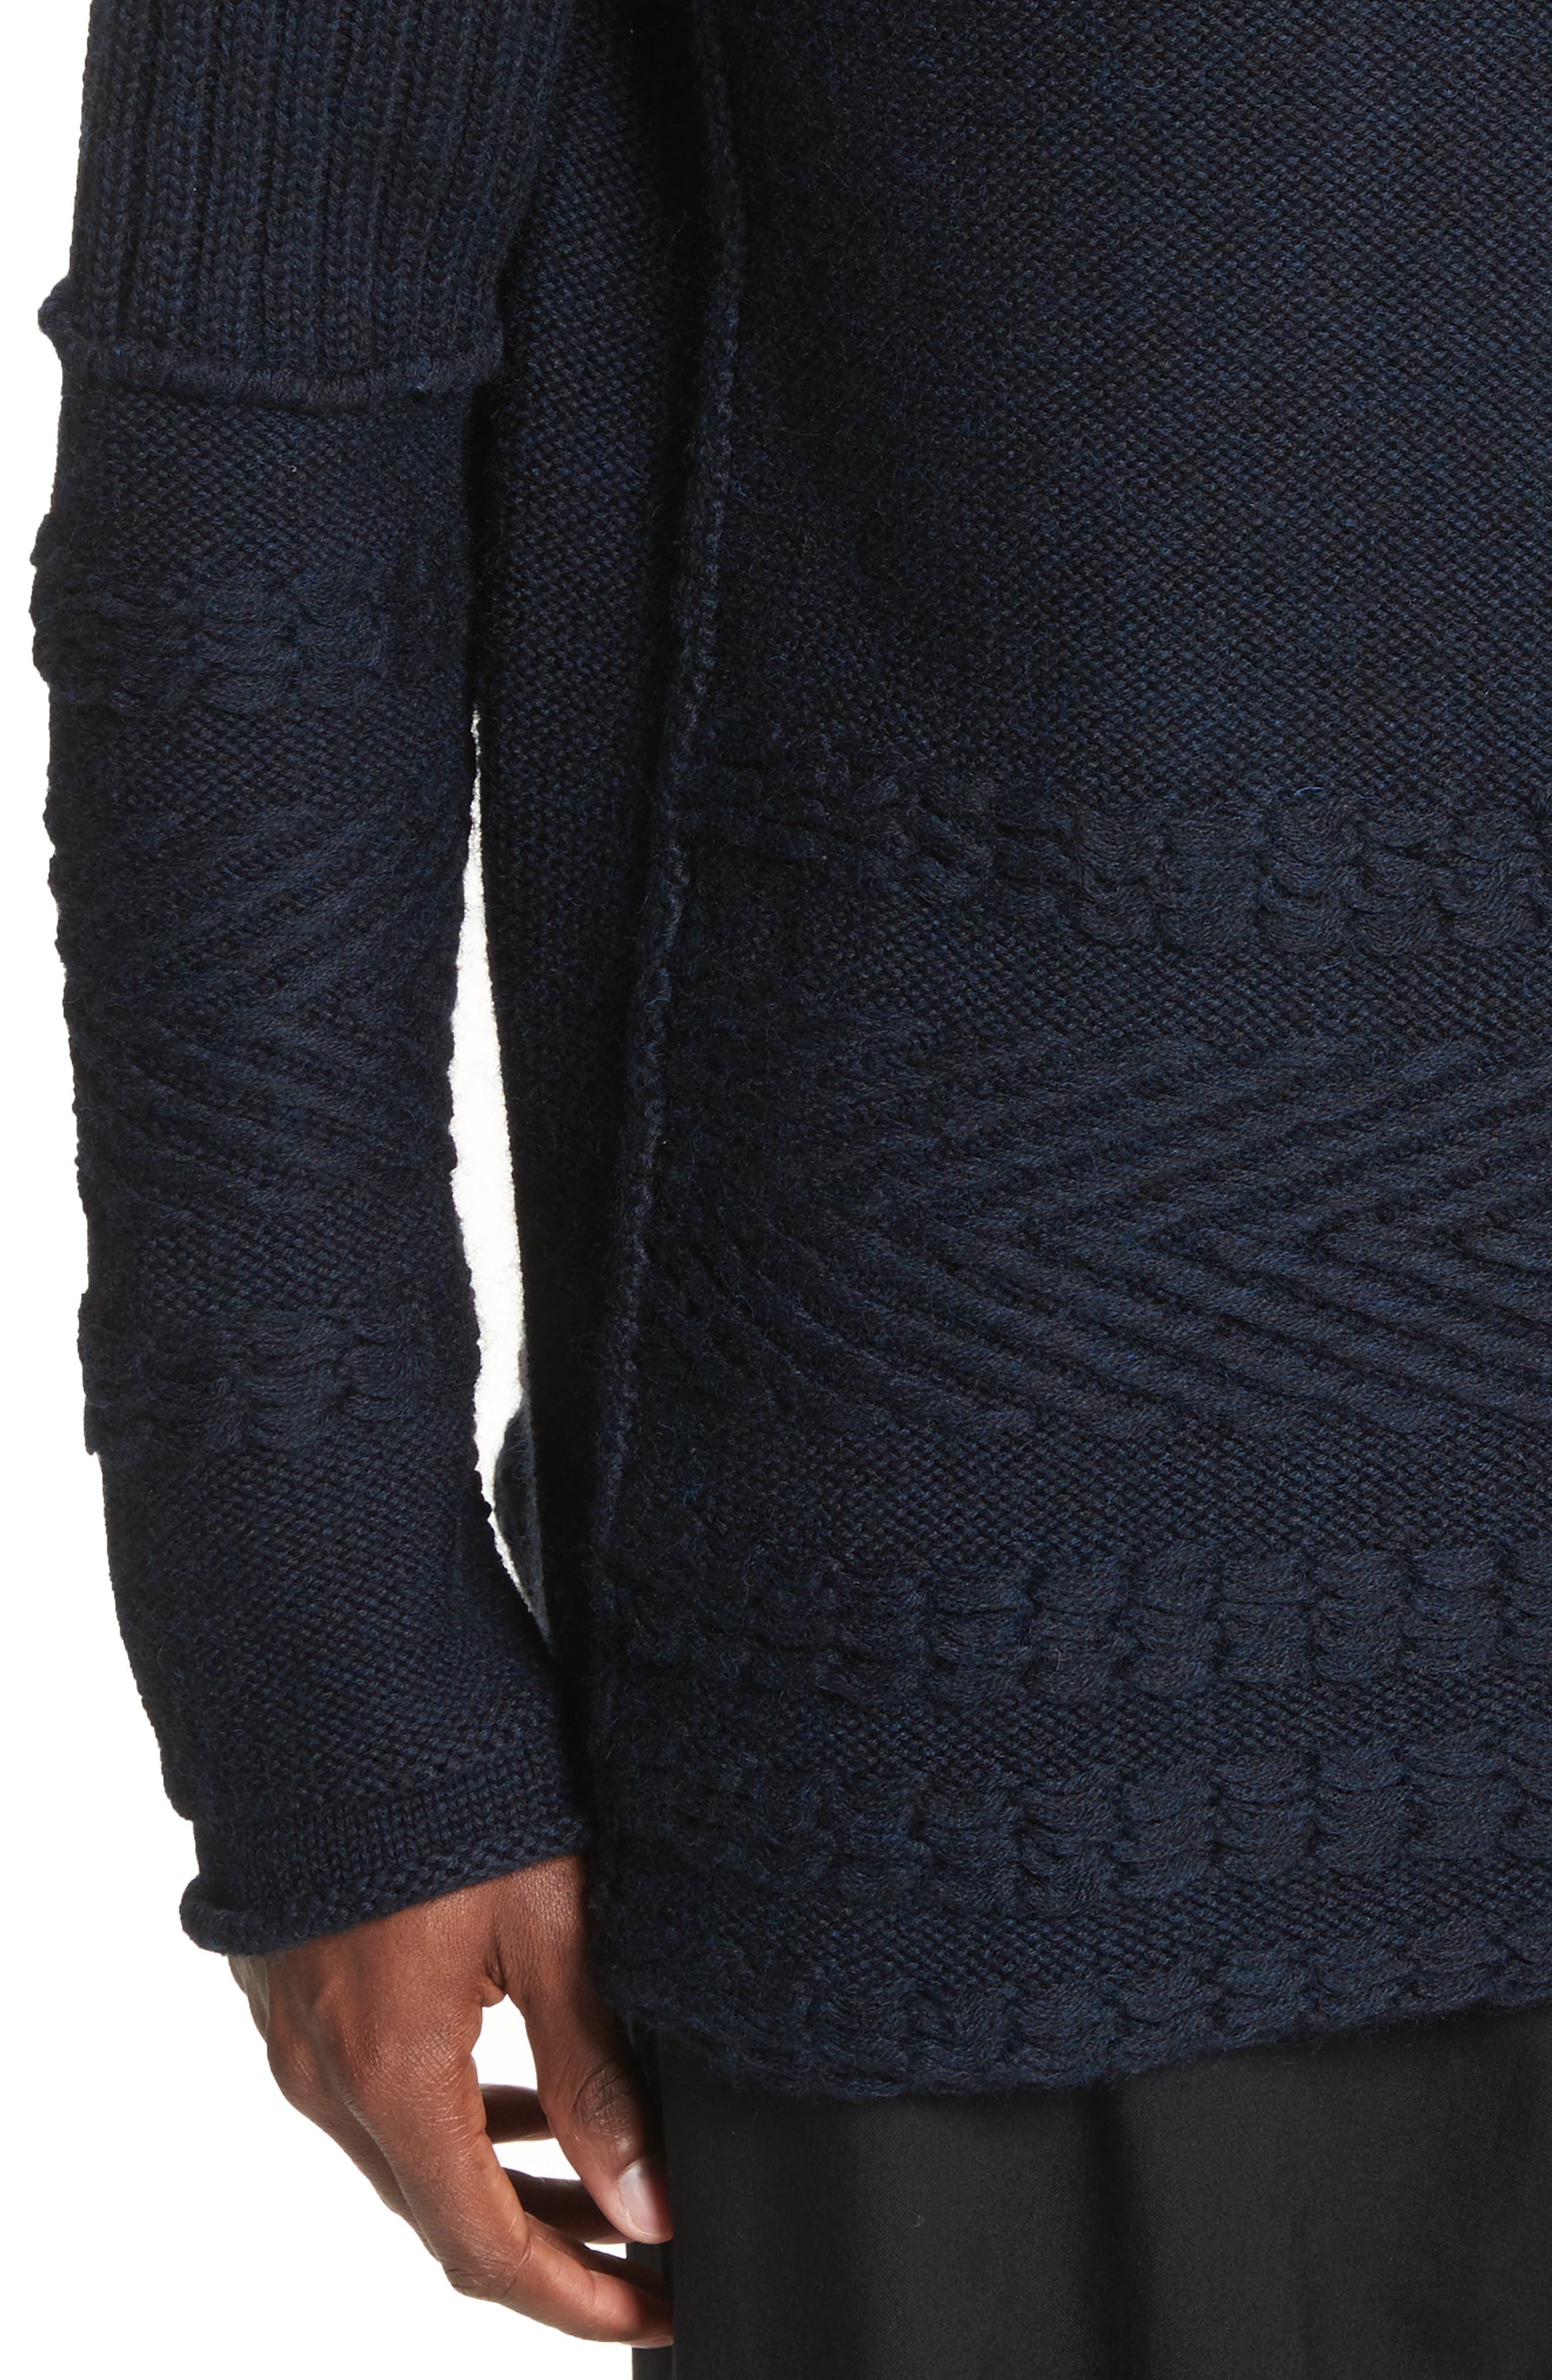 Mixed Knit Wool Sweater,                             Alternate thumbnail 4, color,                             410